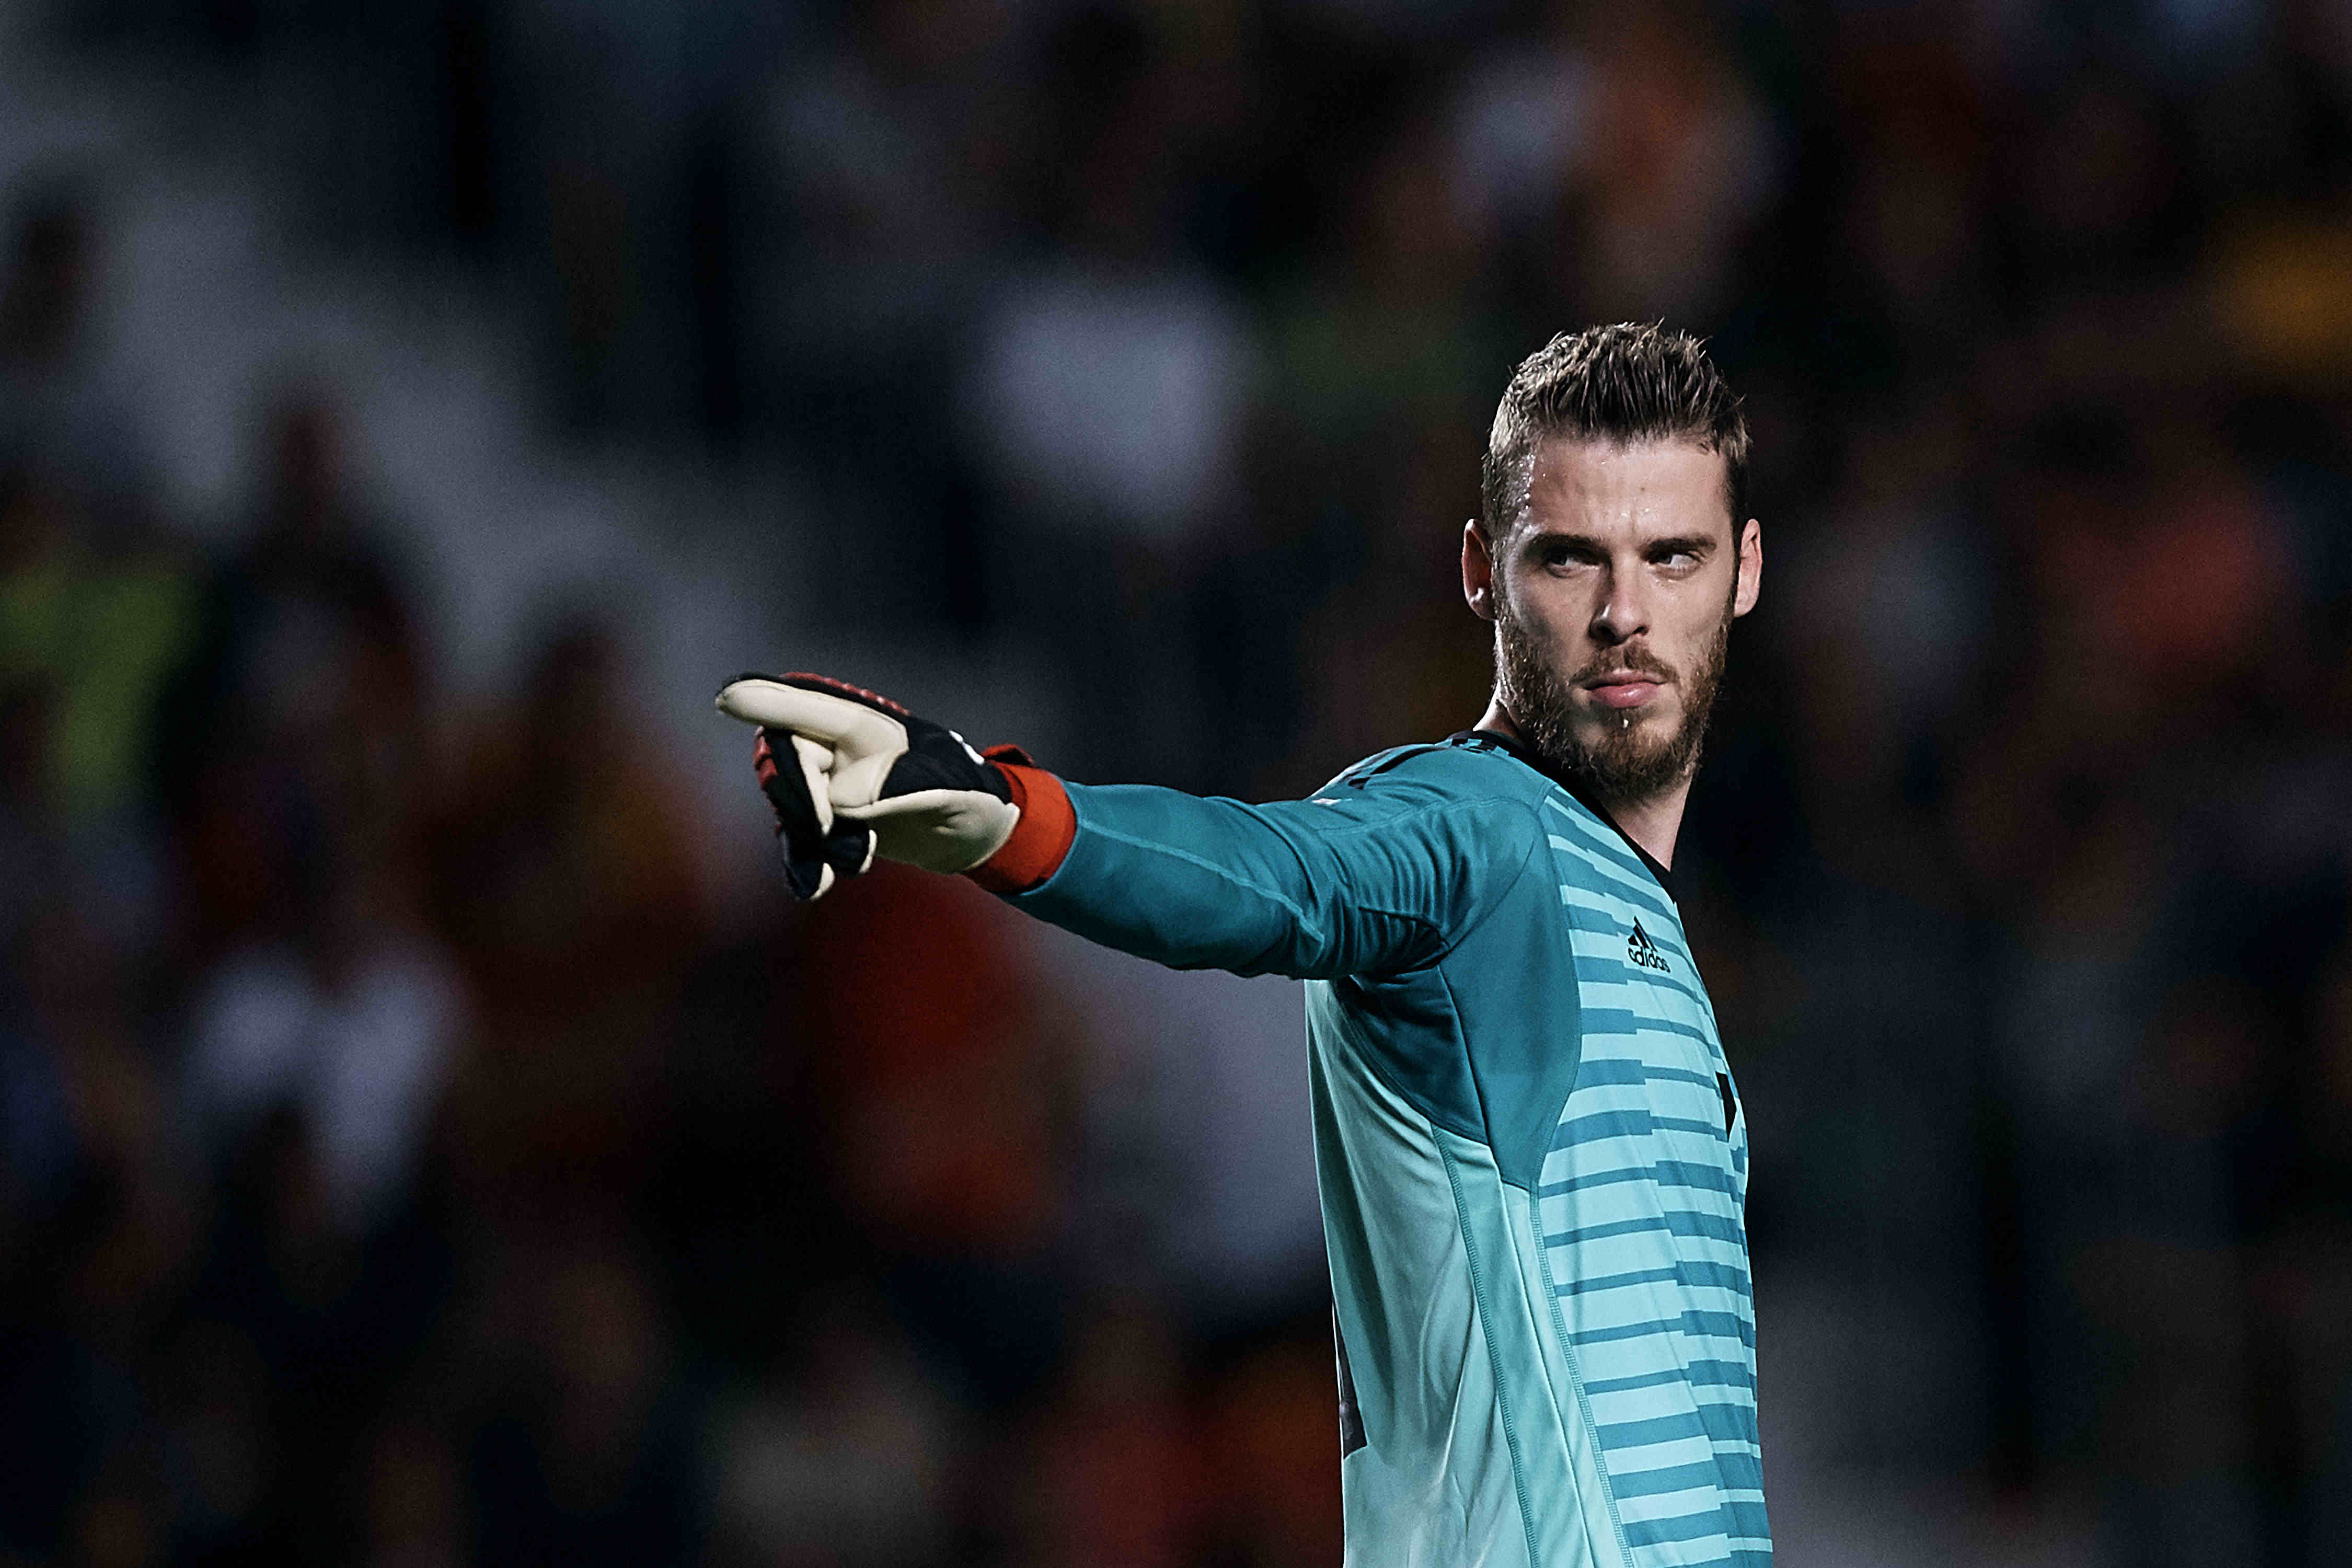 Euro 2020 Qualifiers Saturday Acca: Preview, Betting Tips and Enhanced Odds